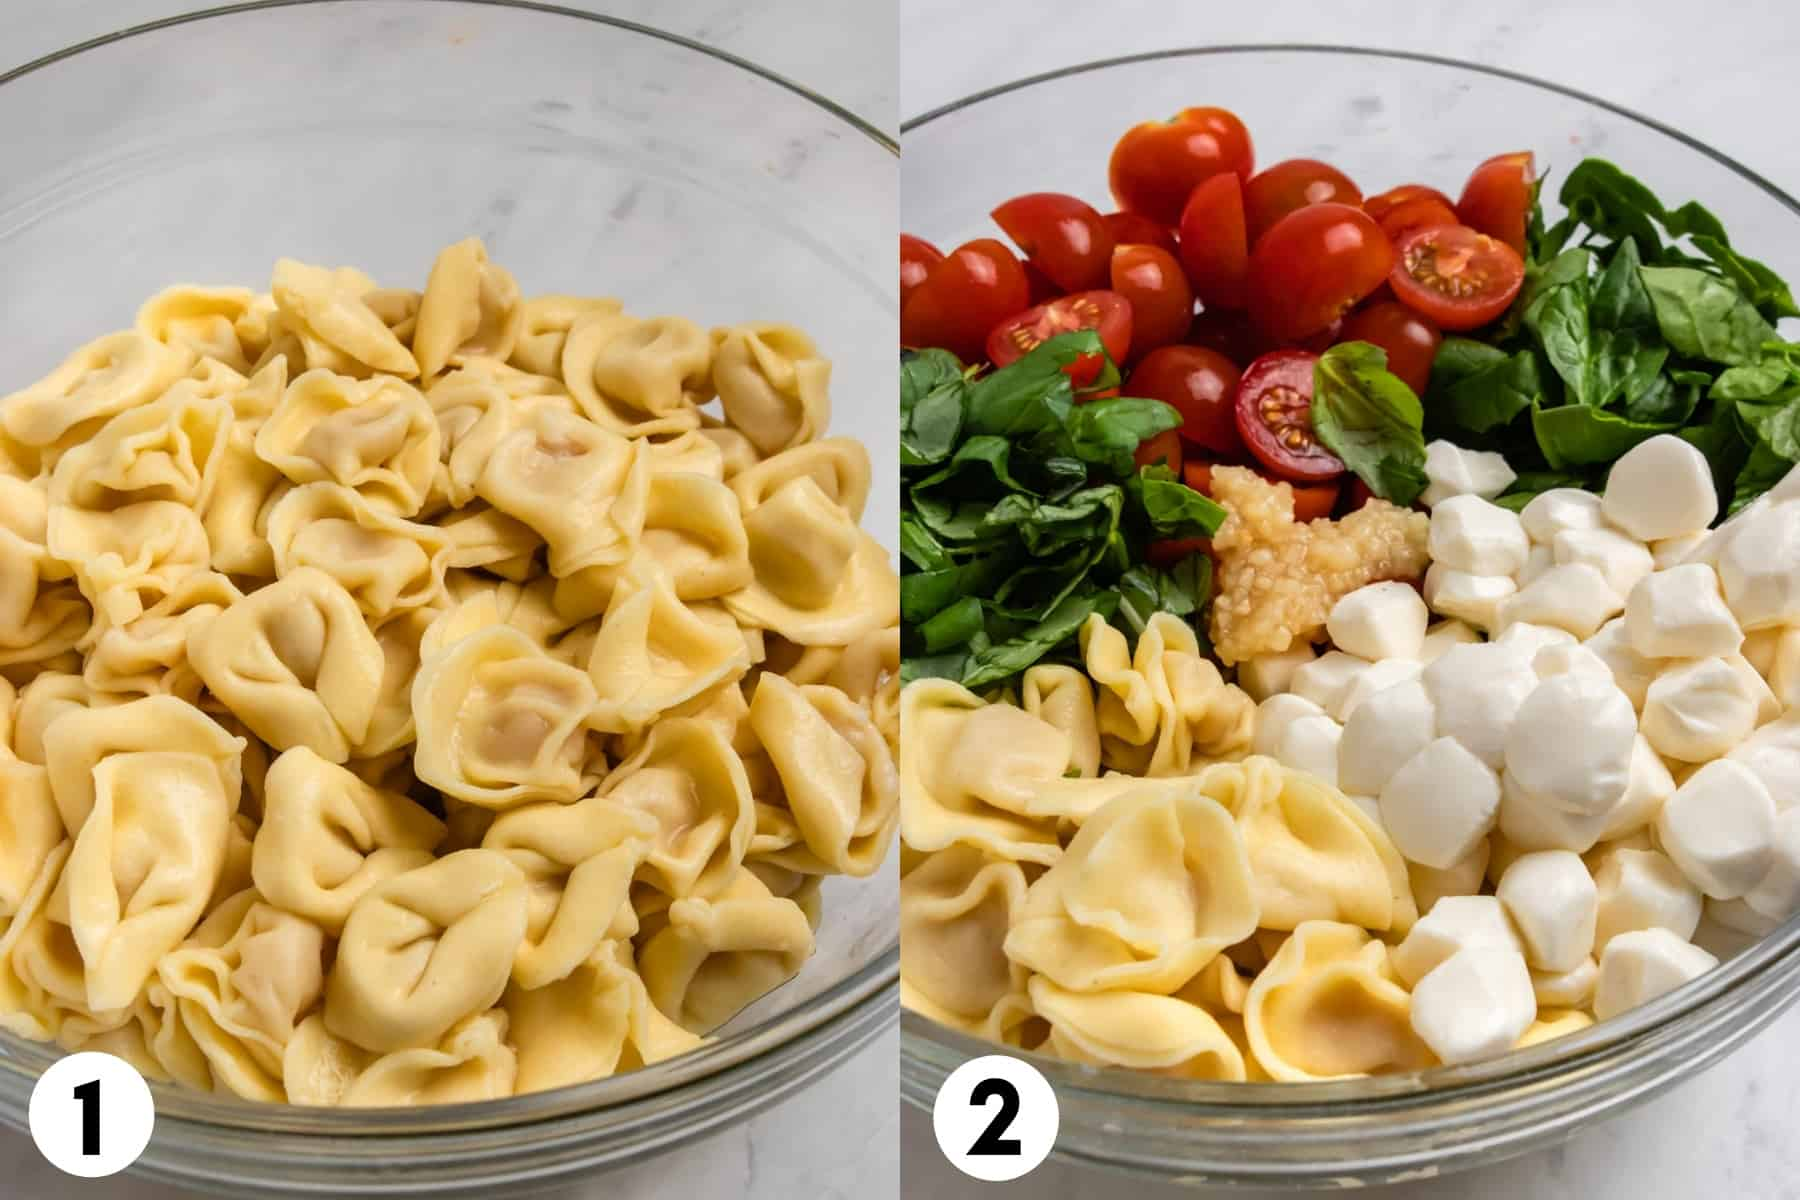 Pasta in mixing bowl and then a second image with pasta, cheese, basil, spinach and other ingredients.